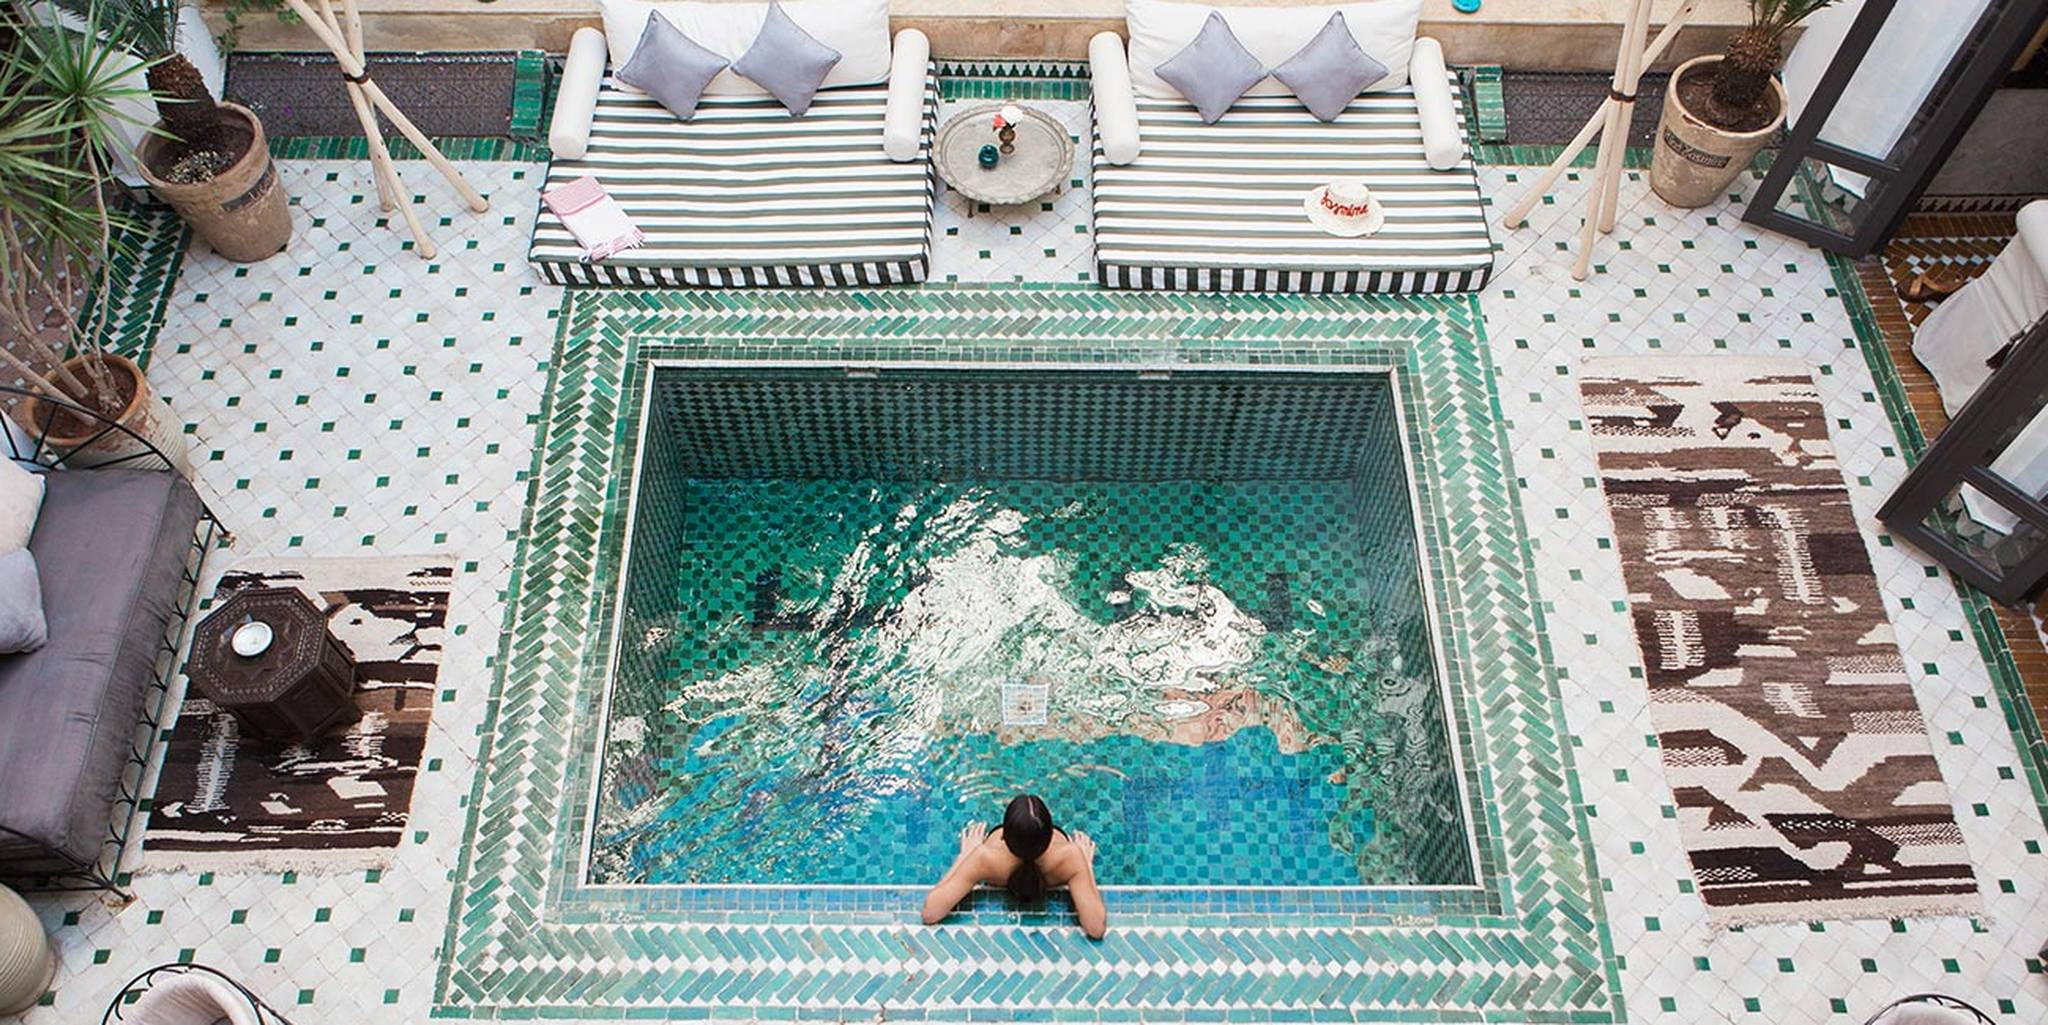 Every Traveler on Instagram Has the Same Photo of This Pool